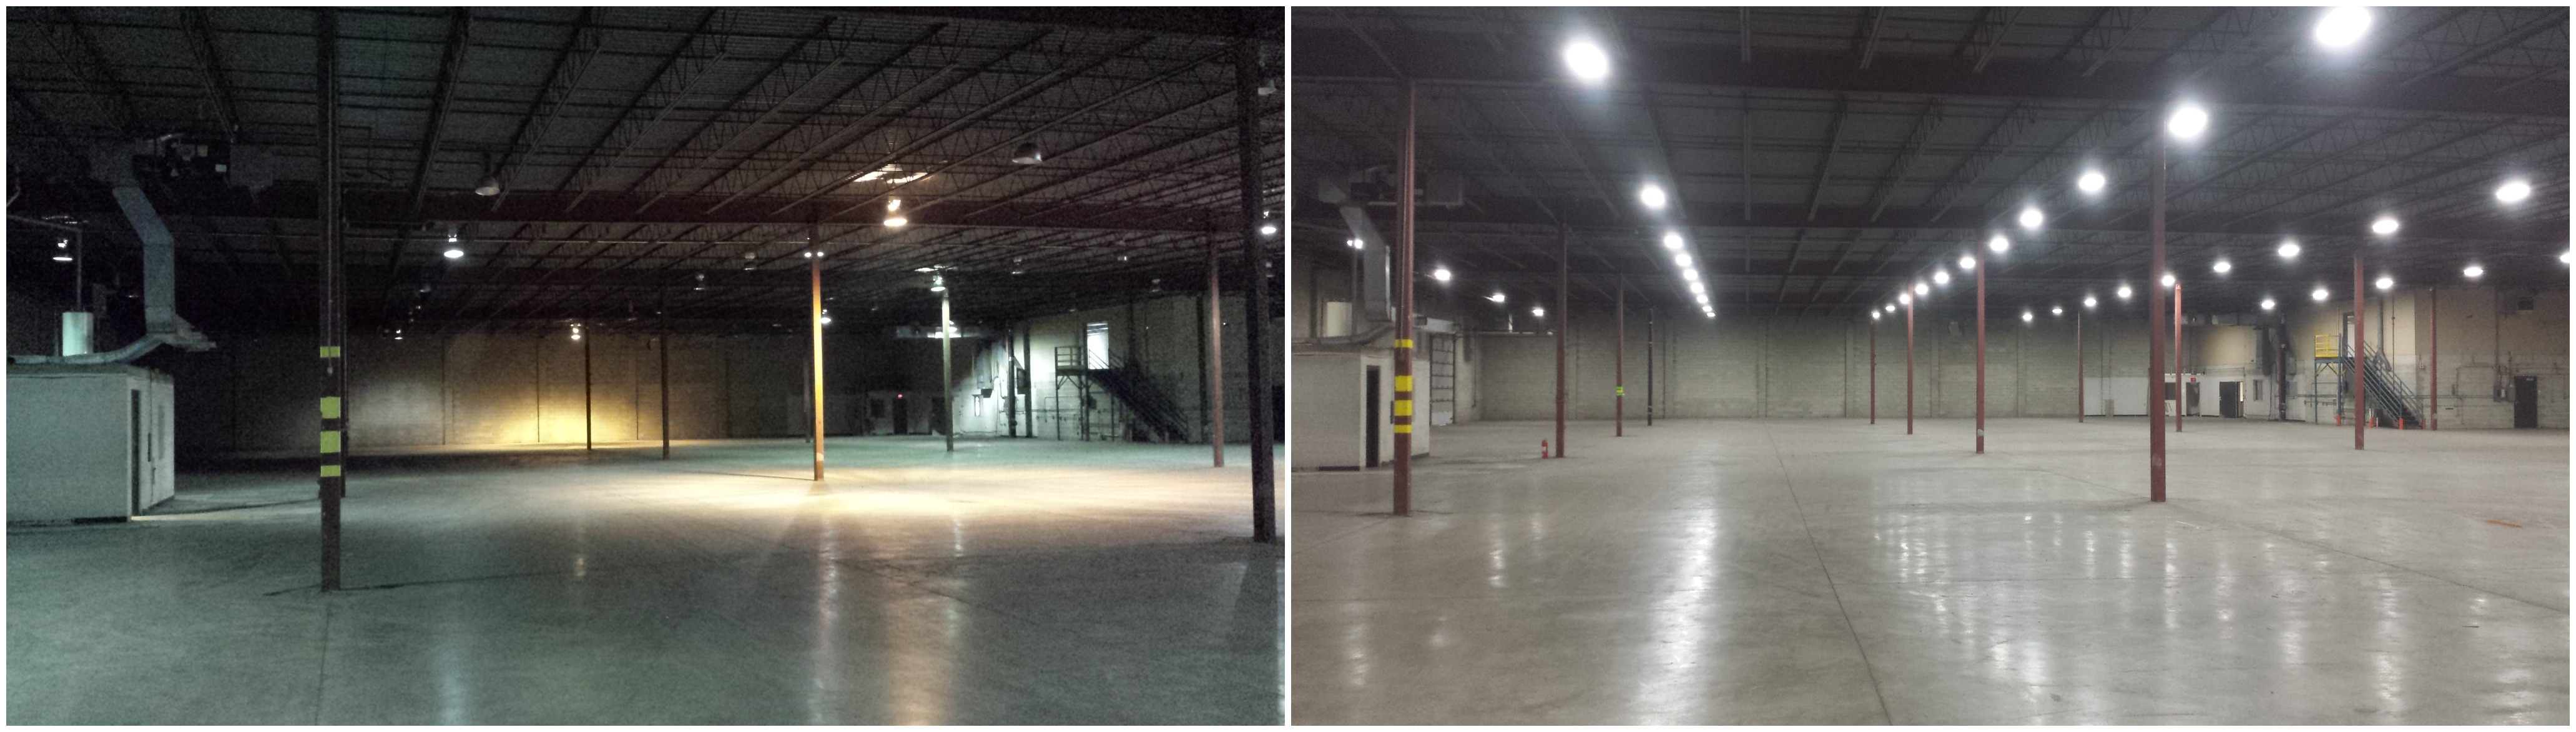 400 watt Metal Halides vs LED